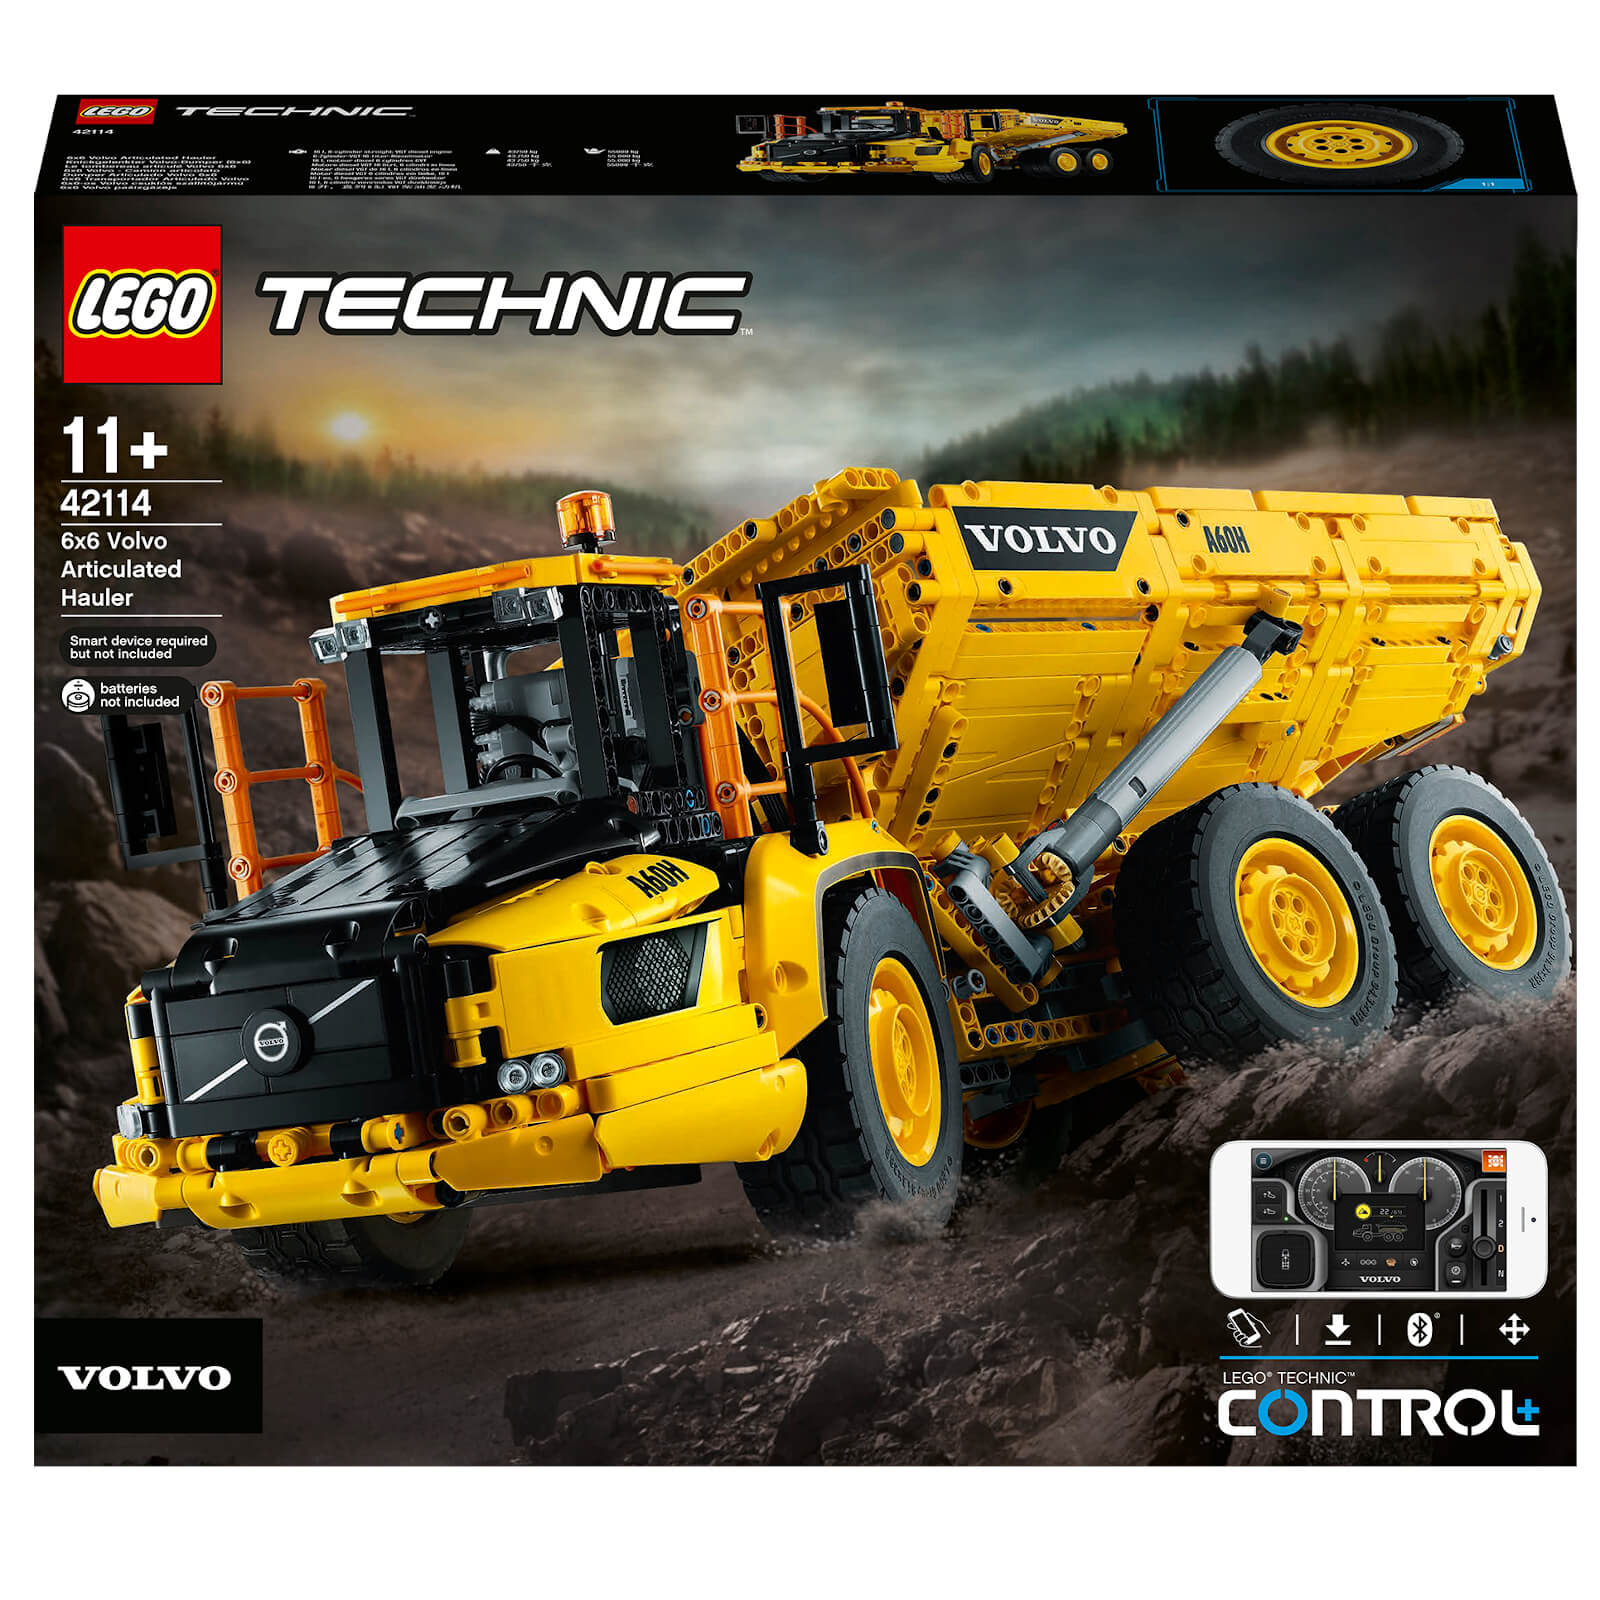 Building Kit 2,193 Pieces LEGO Technic 6x6 Volvo Articulated Hauler 42114 Volvo Truck Toy Model for Kids Who Love Construction Vehicle Playsets New 2020